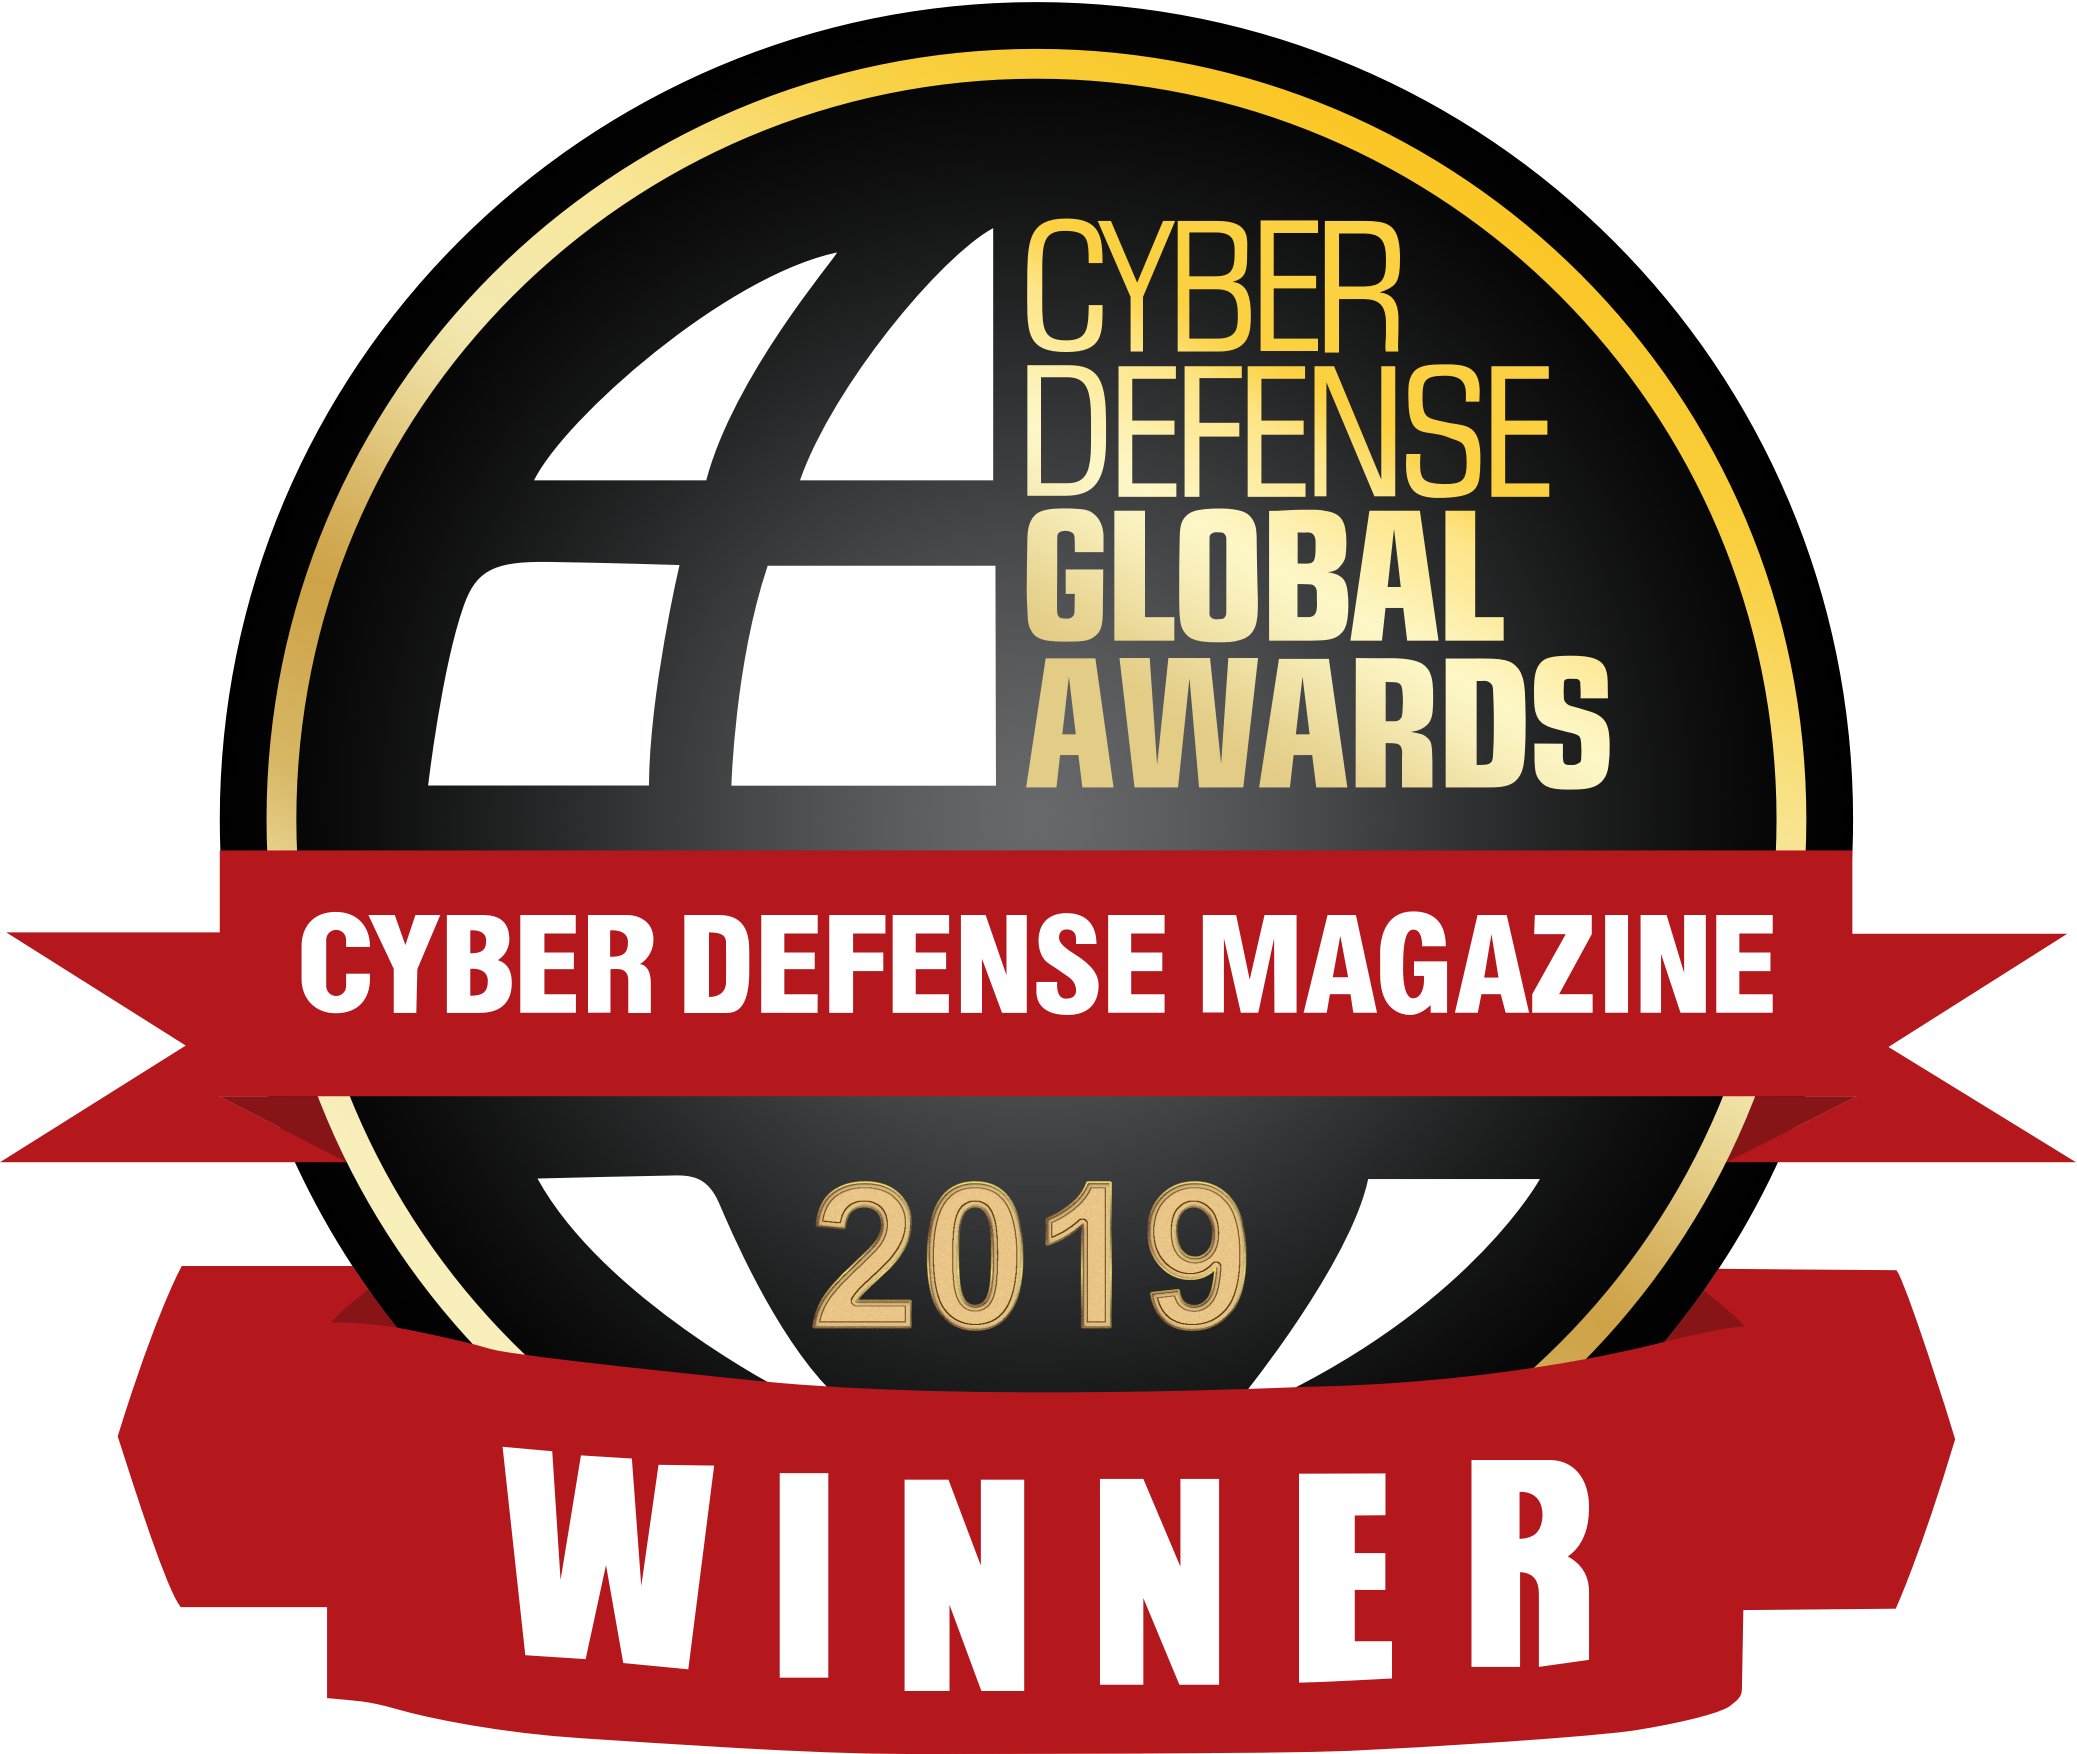 Cyber Defense Global Award